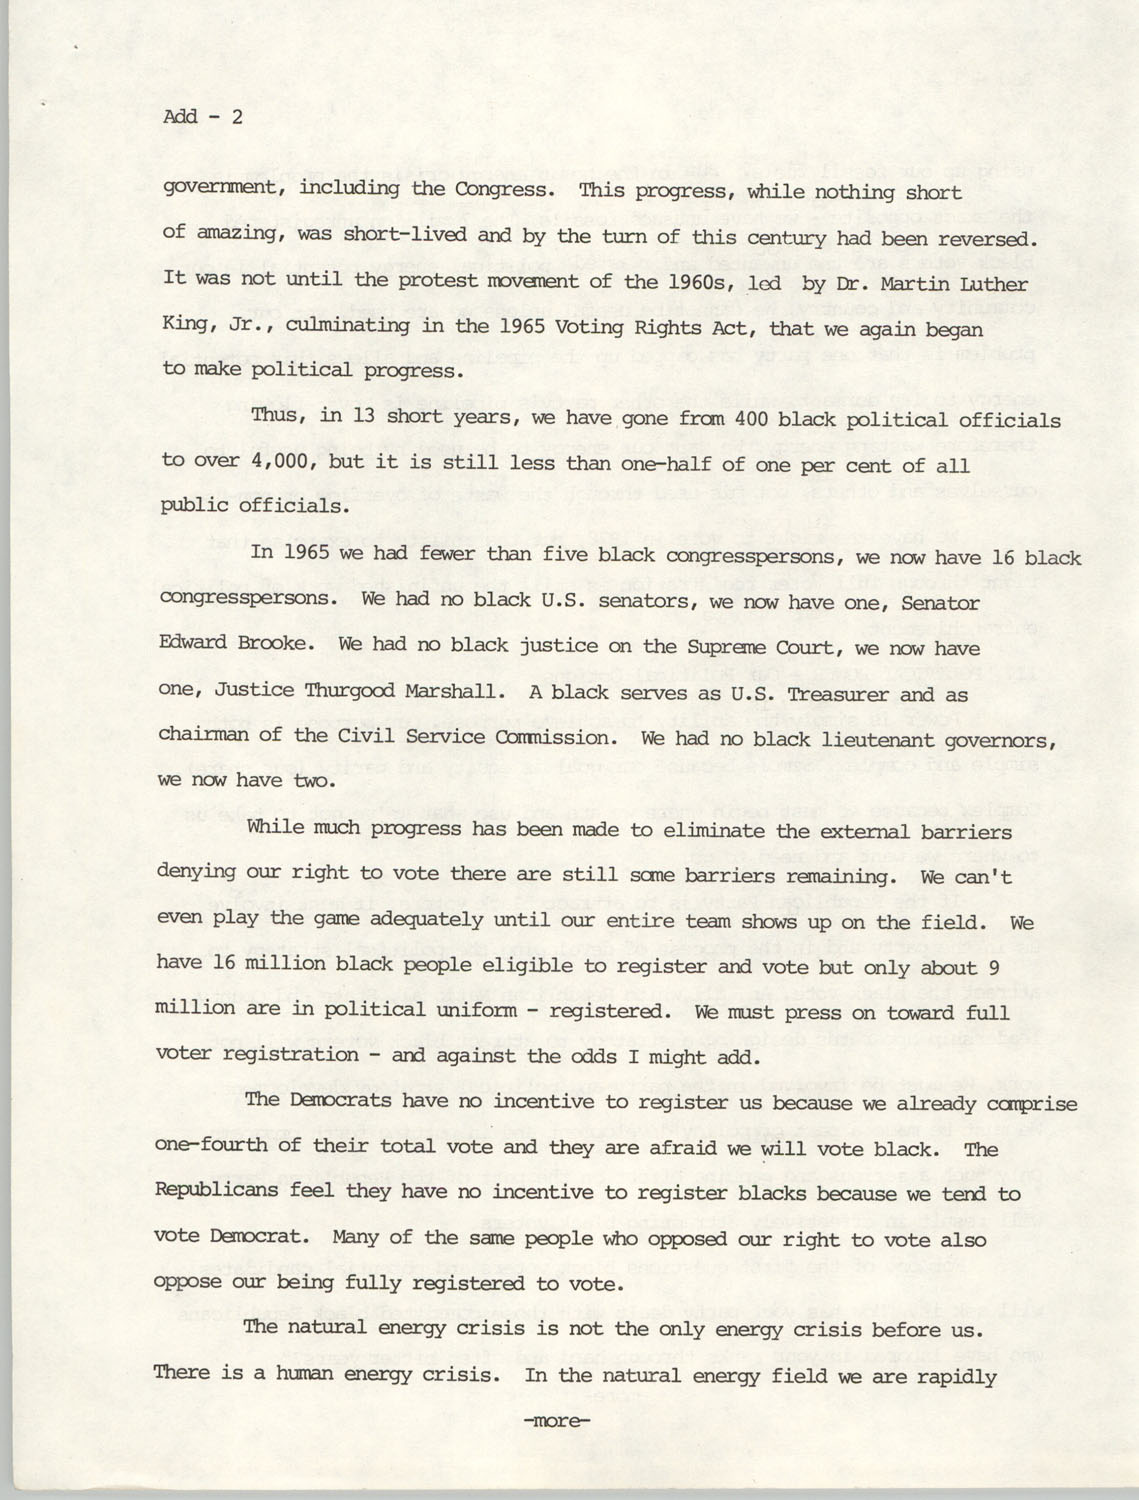 Speech Before the Republican National Committee, Page 2